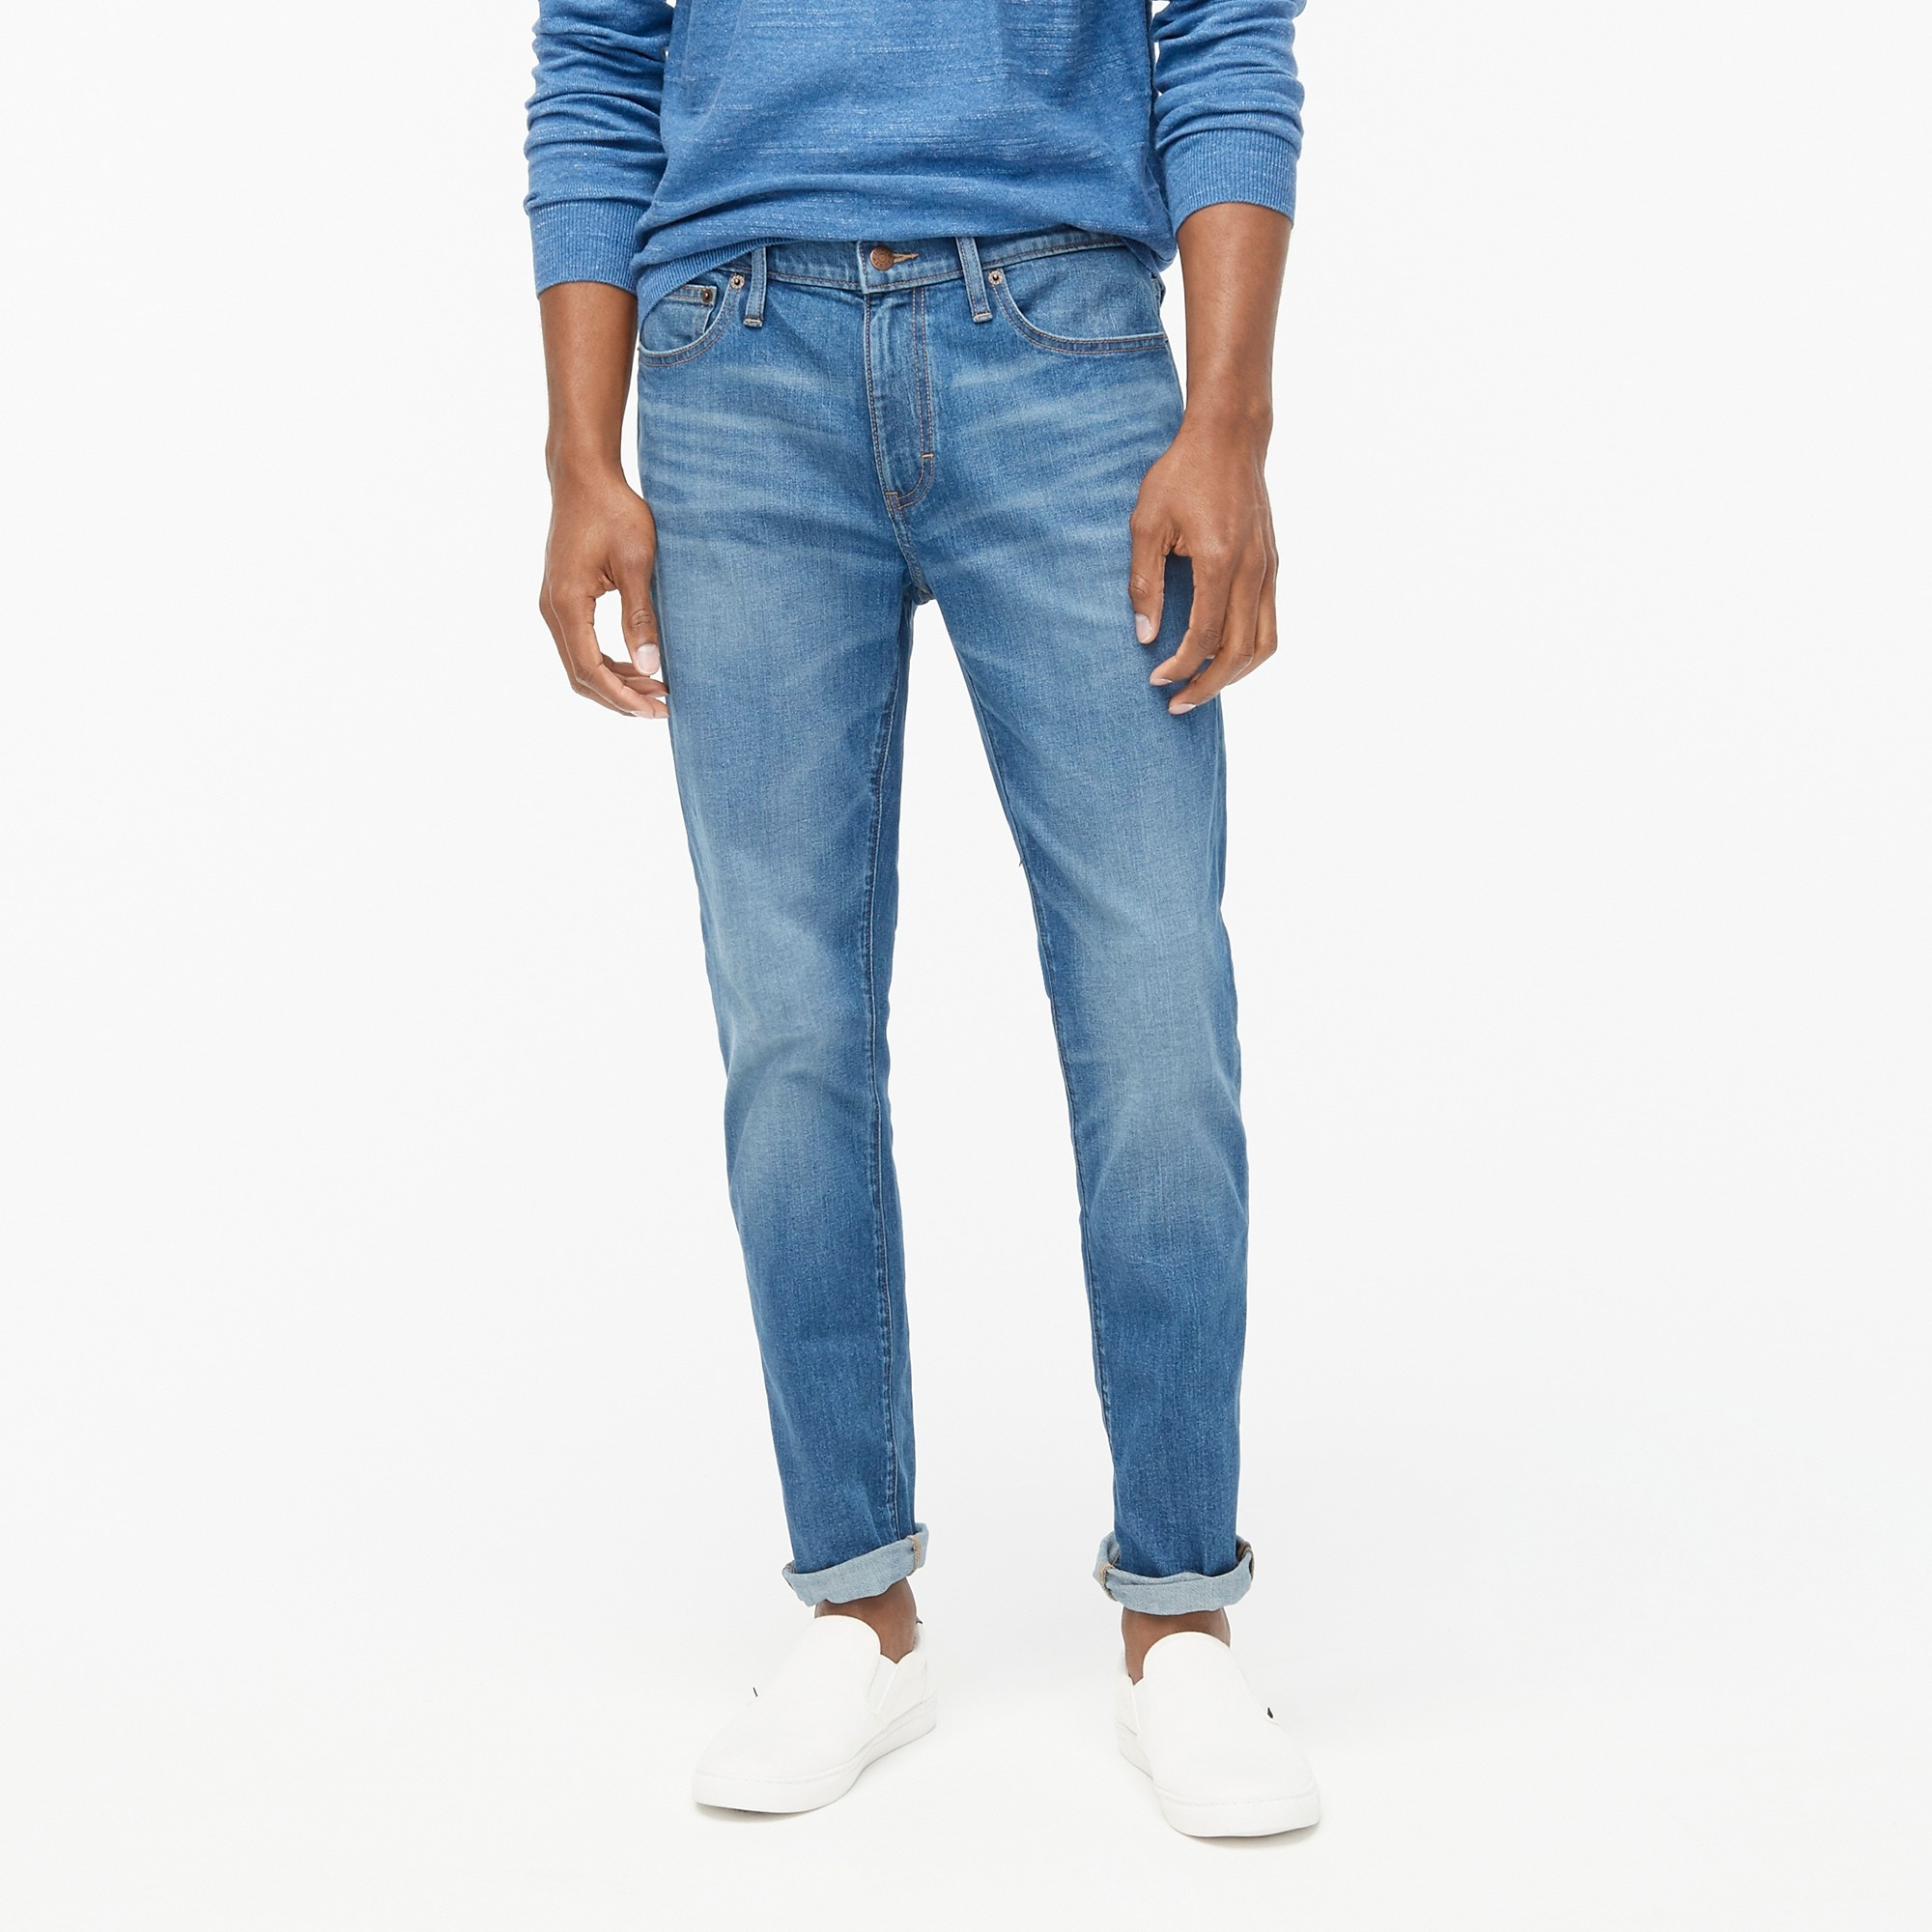 slim-fit flex jean in medium wash : factorymen denim